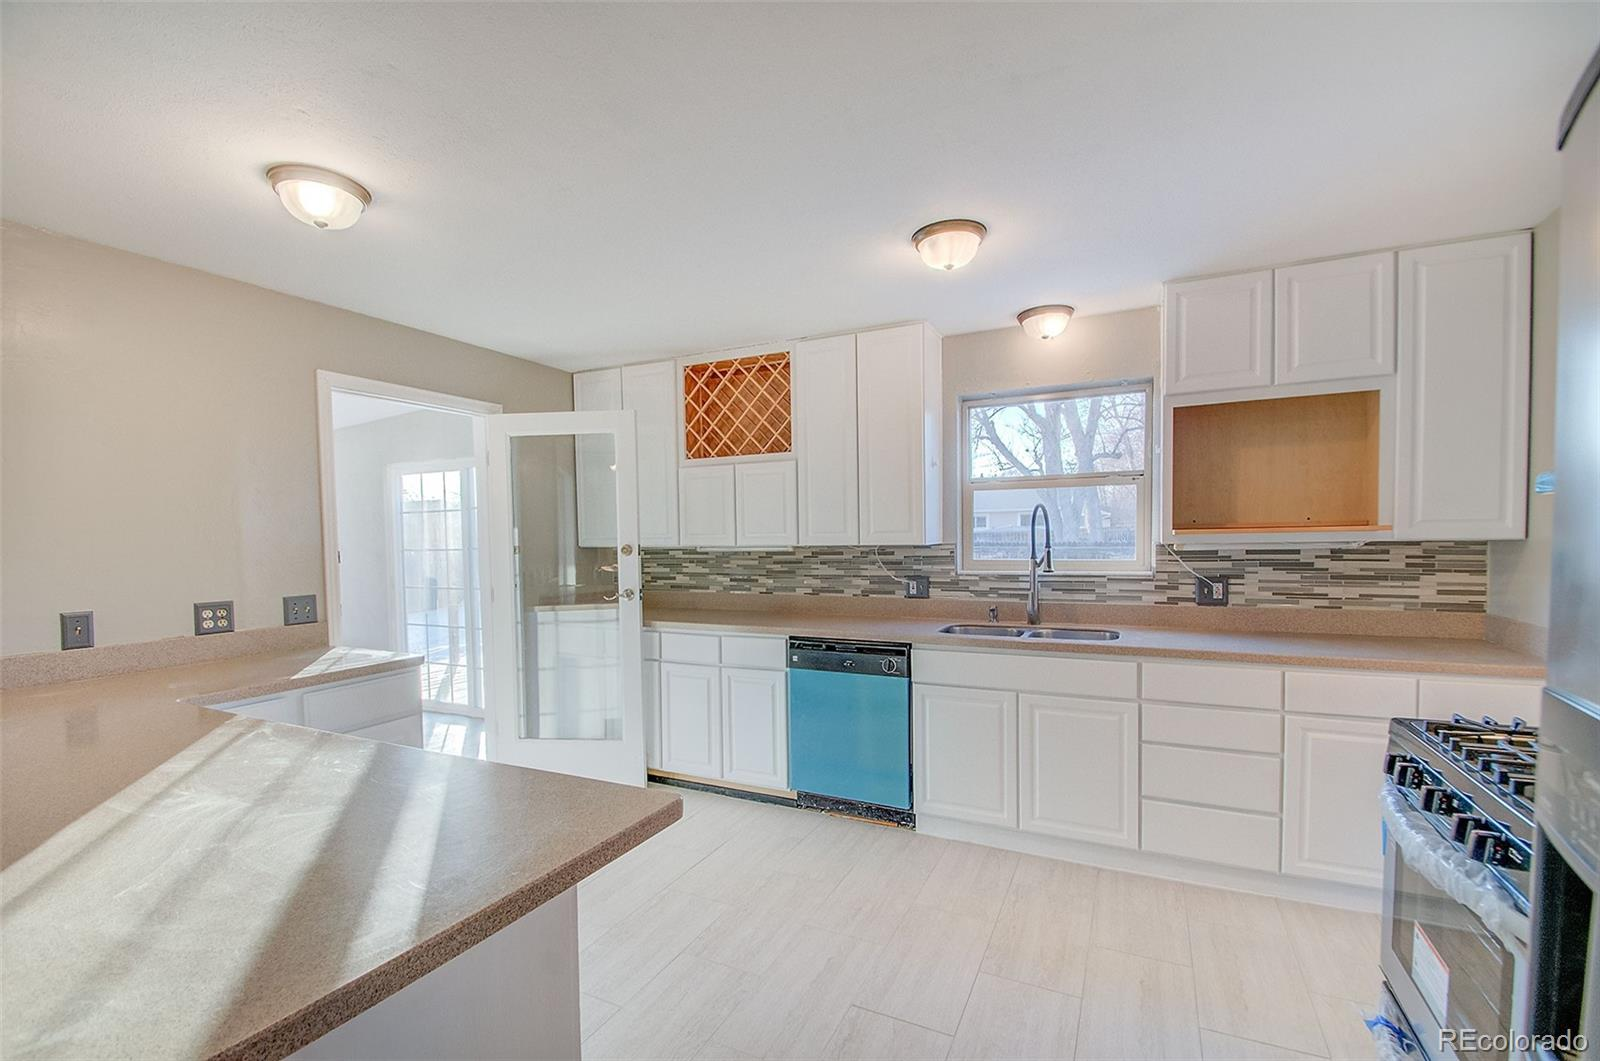 MLS# 2260867 - 11 - 6075 W 82nd Place, Arvada, CO 80003